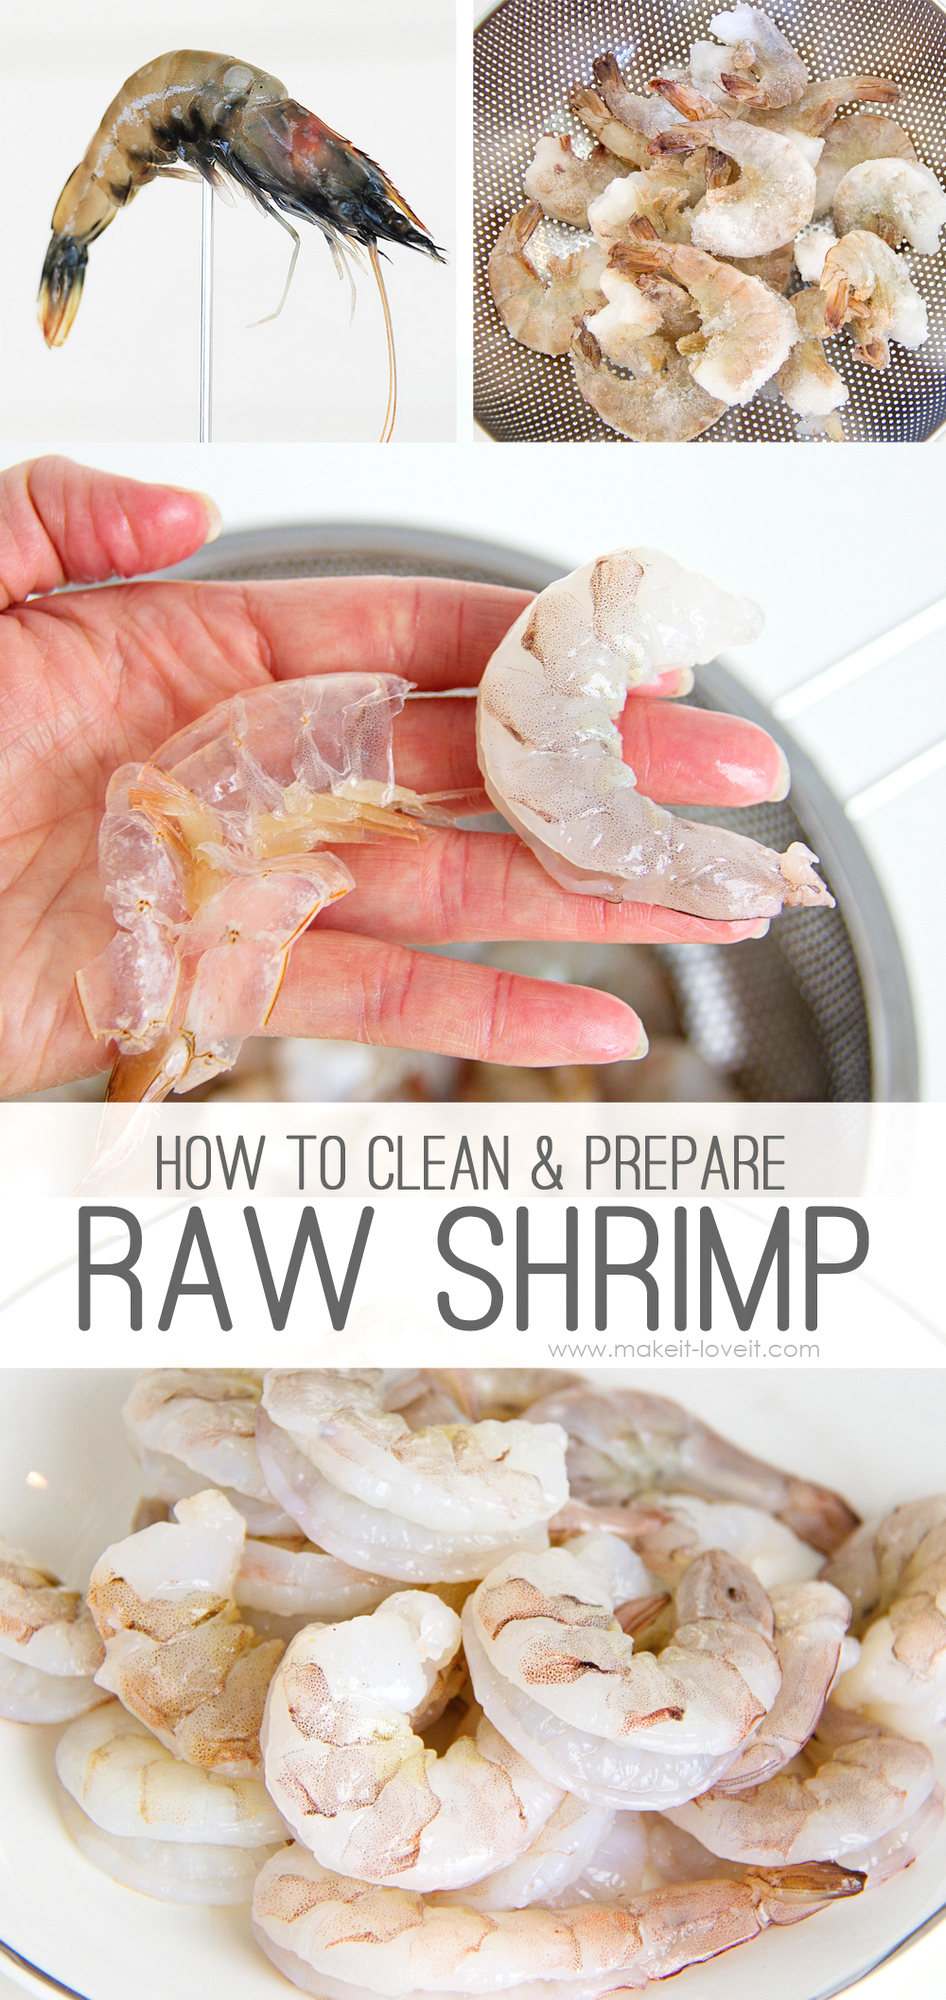 How to Clean and Prepare Raw Shrimp